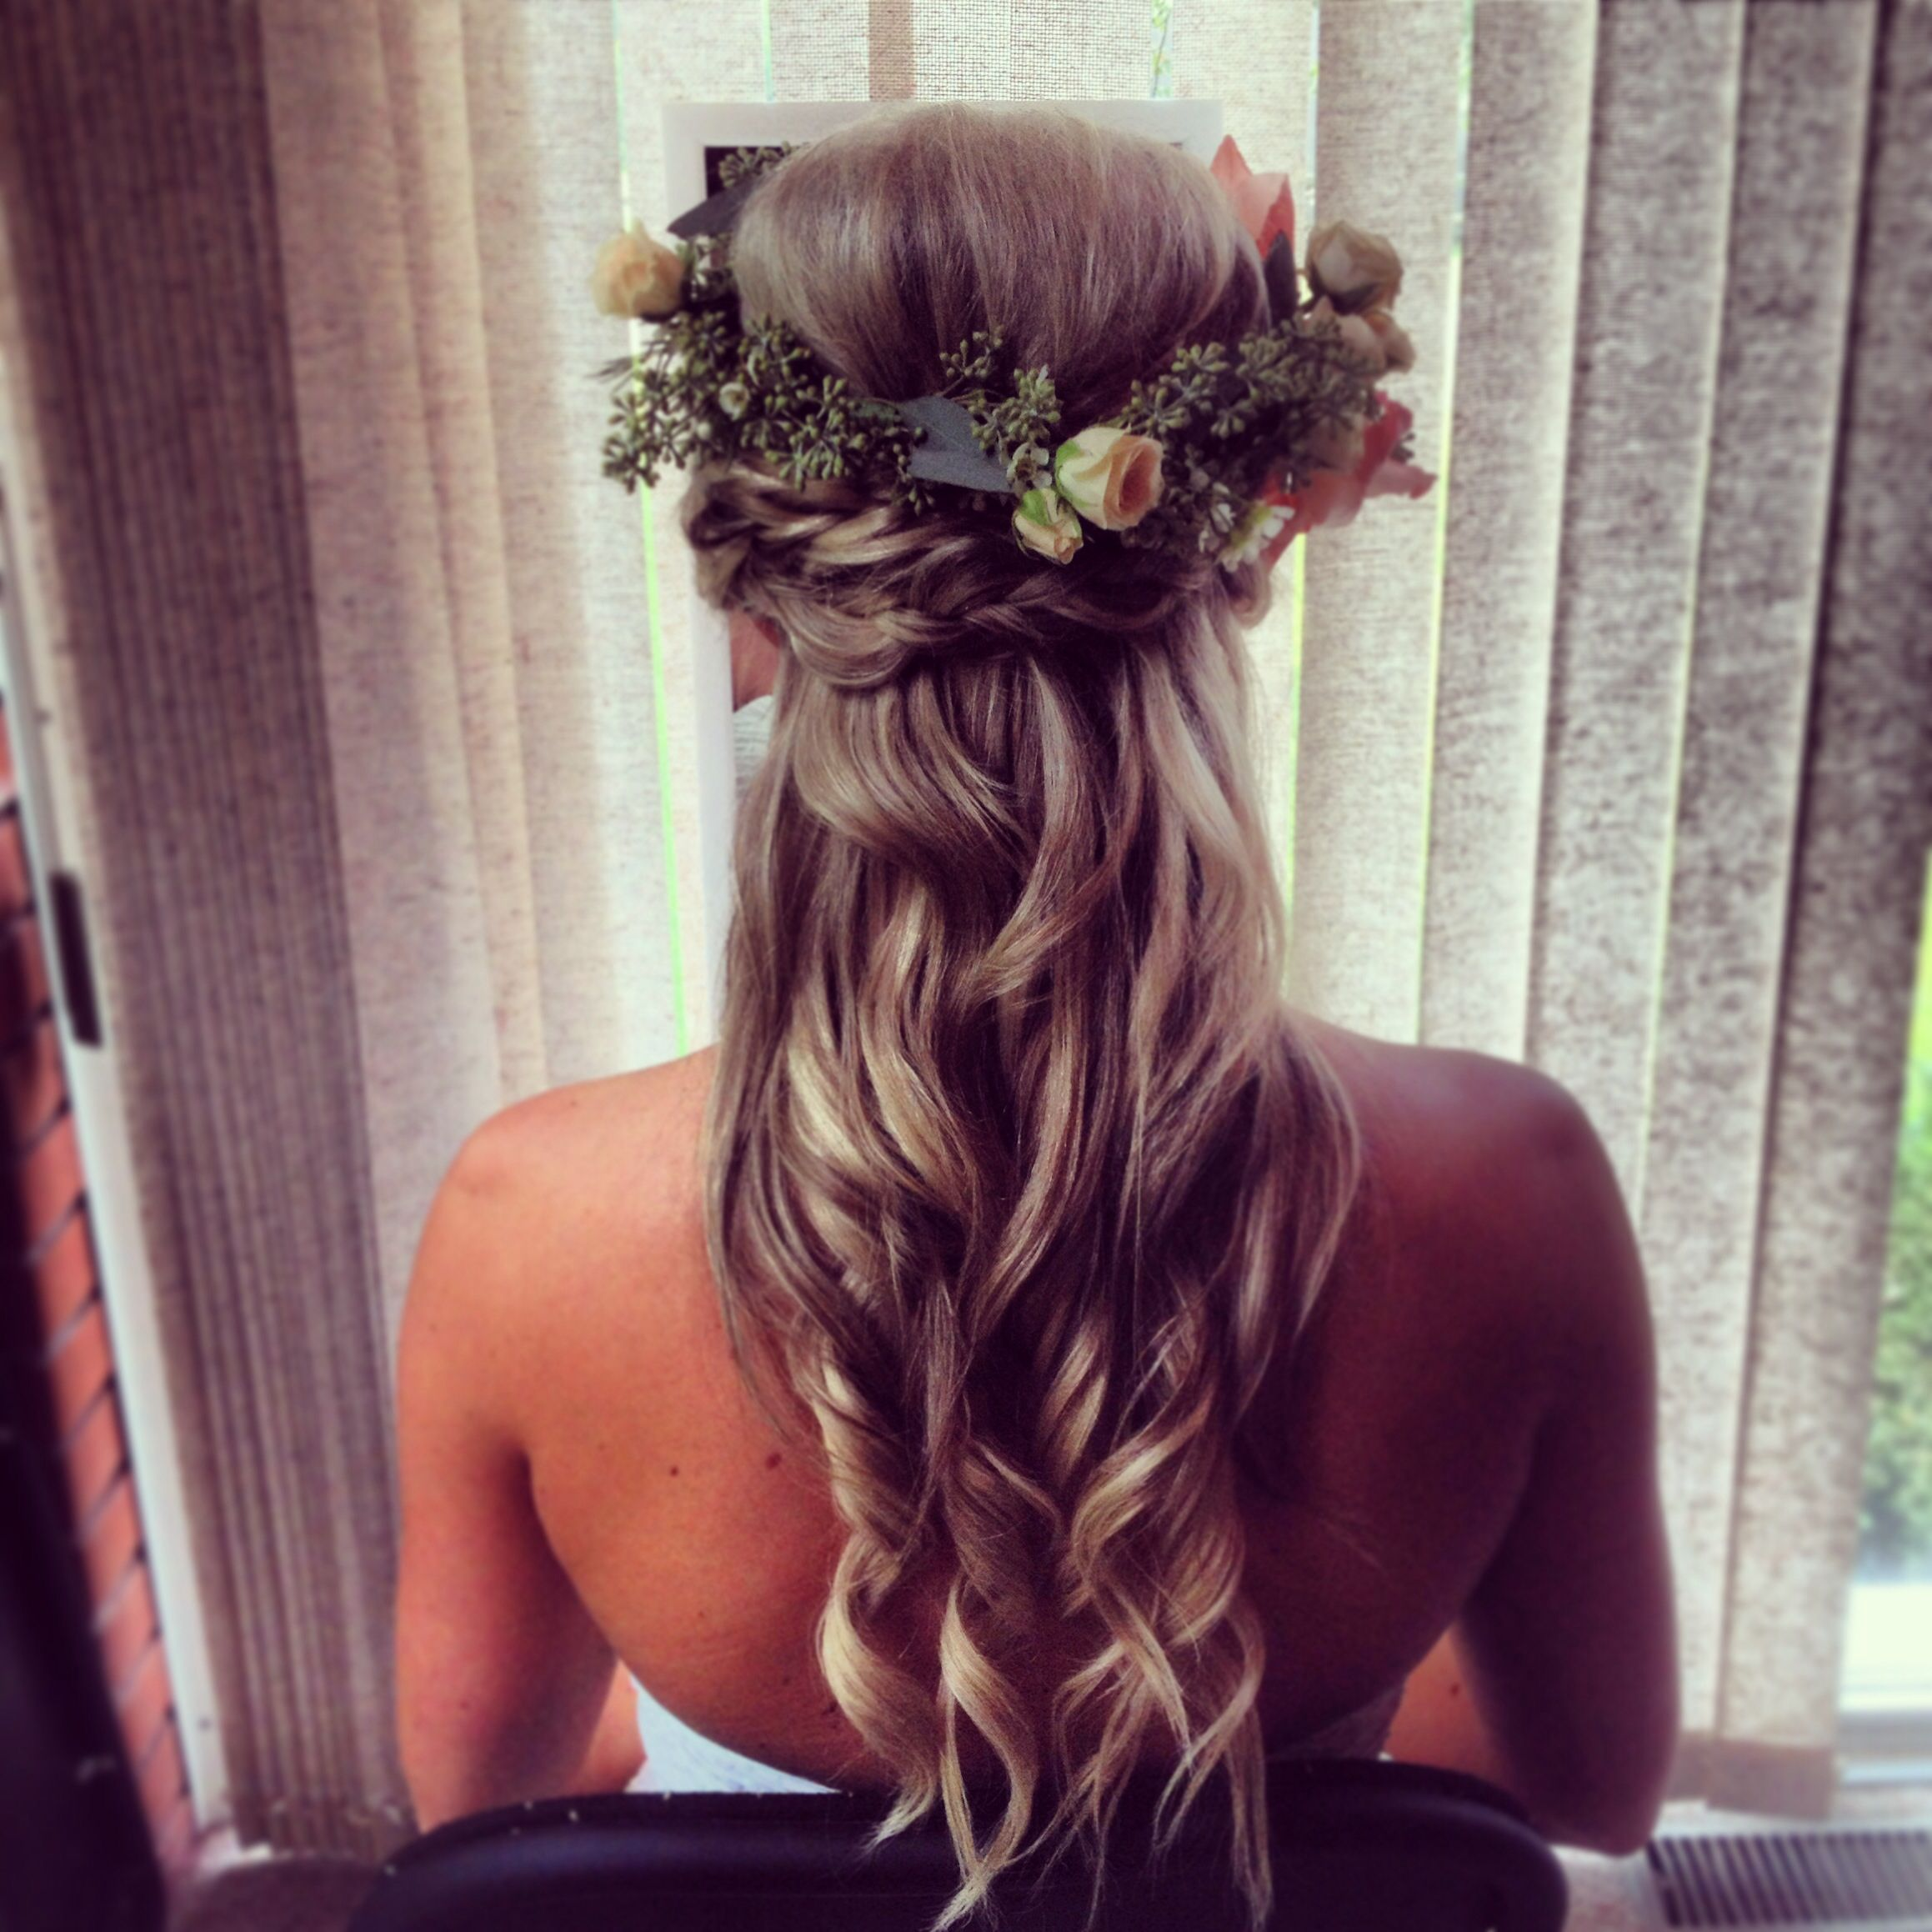 boho bridal half up hairstyle with braids and flower crown